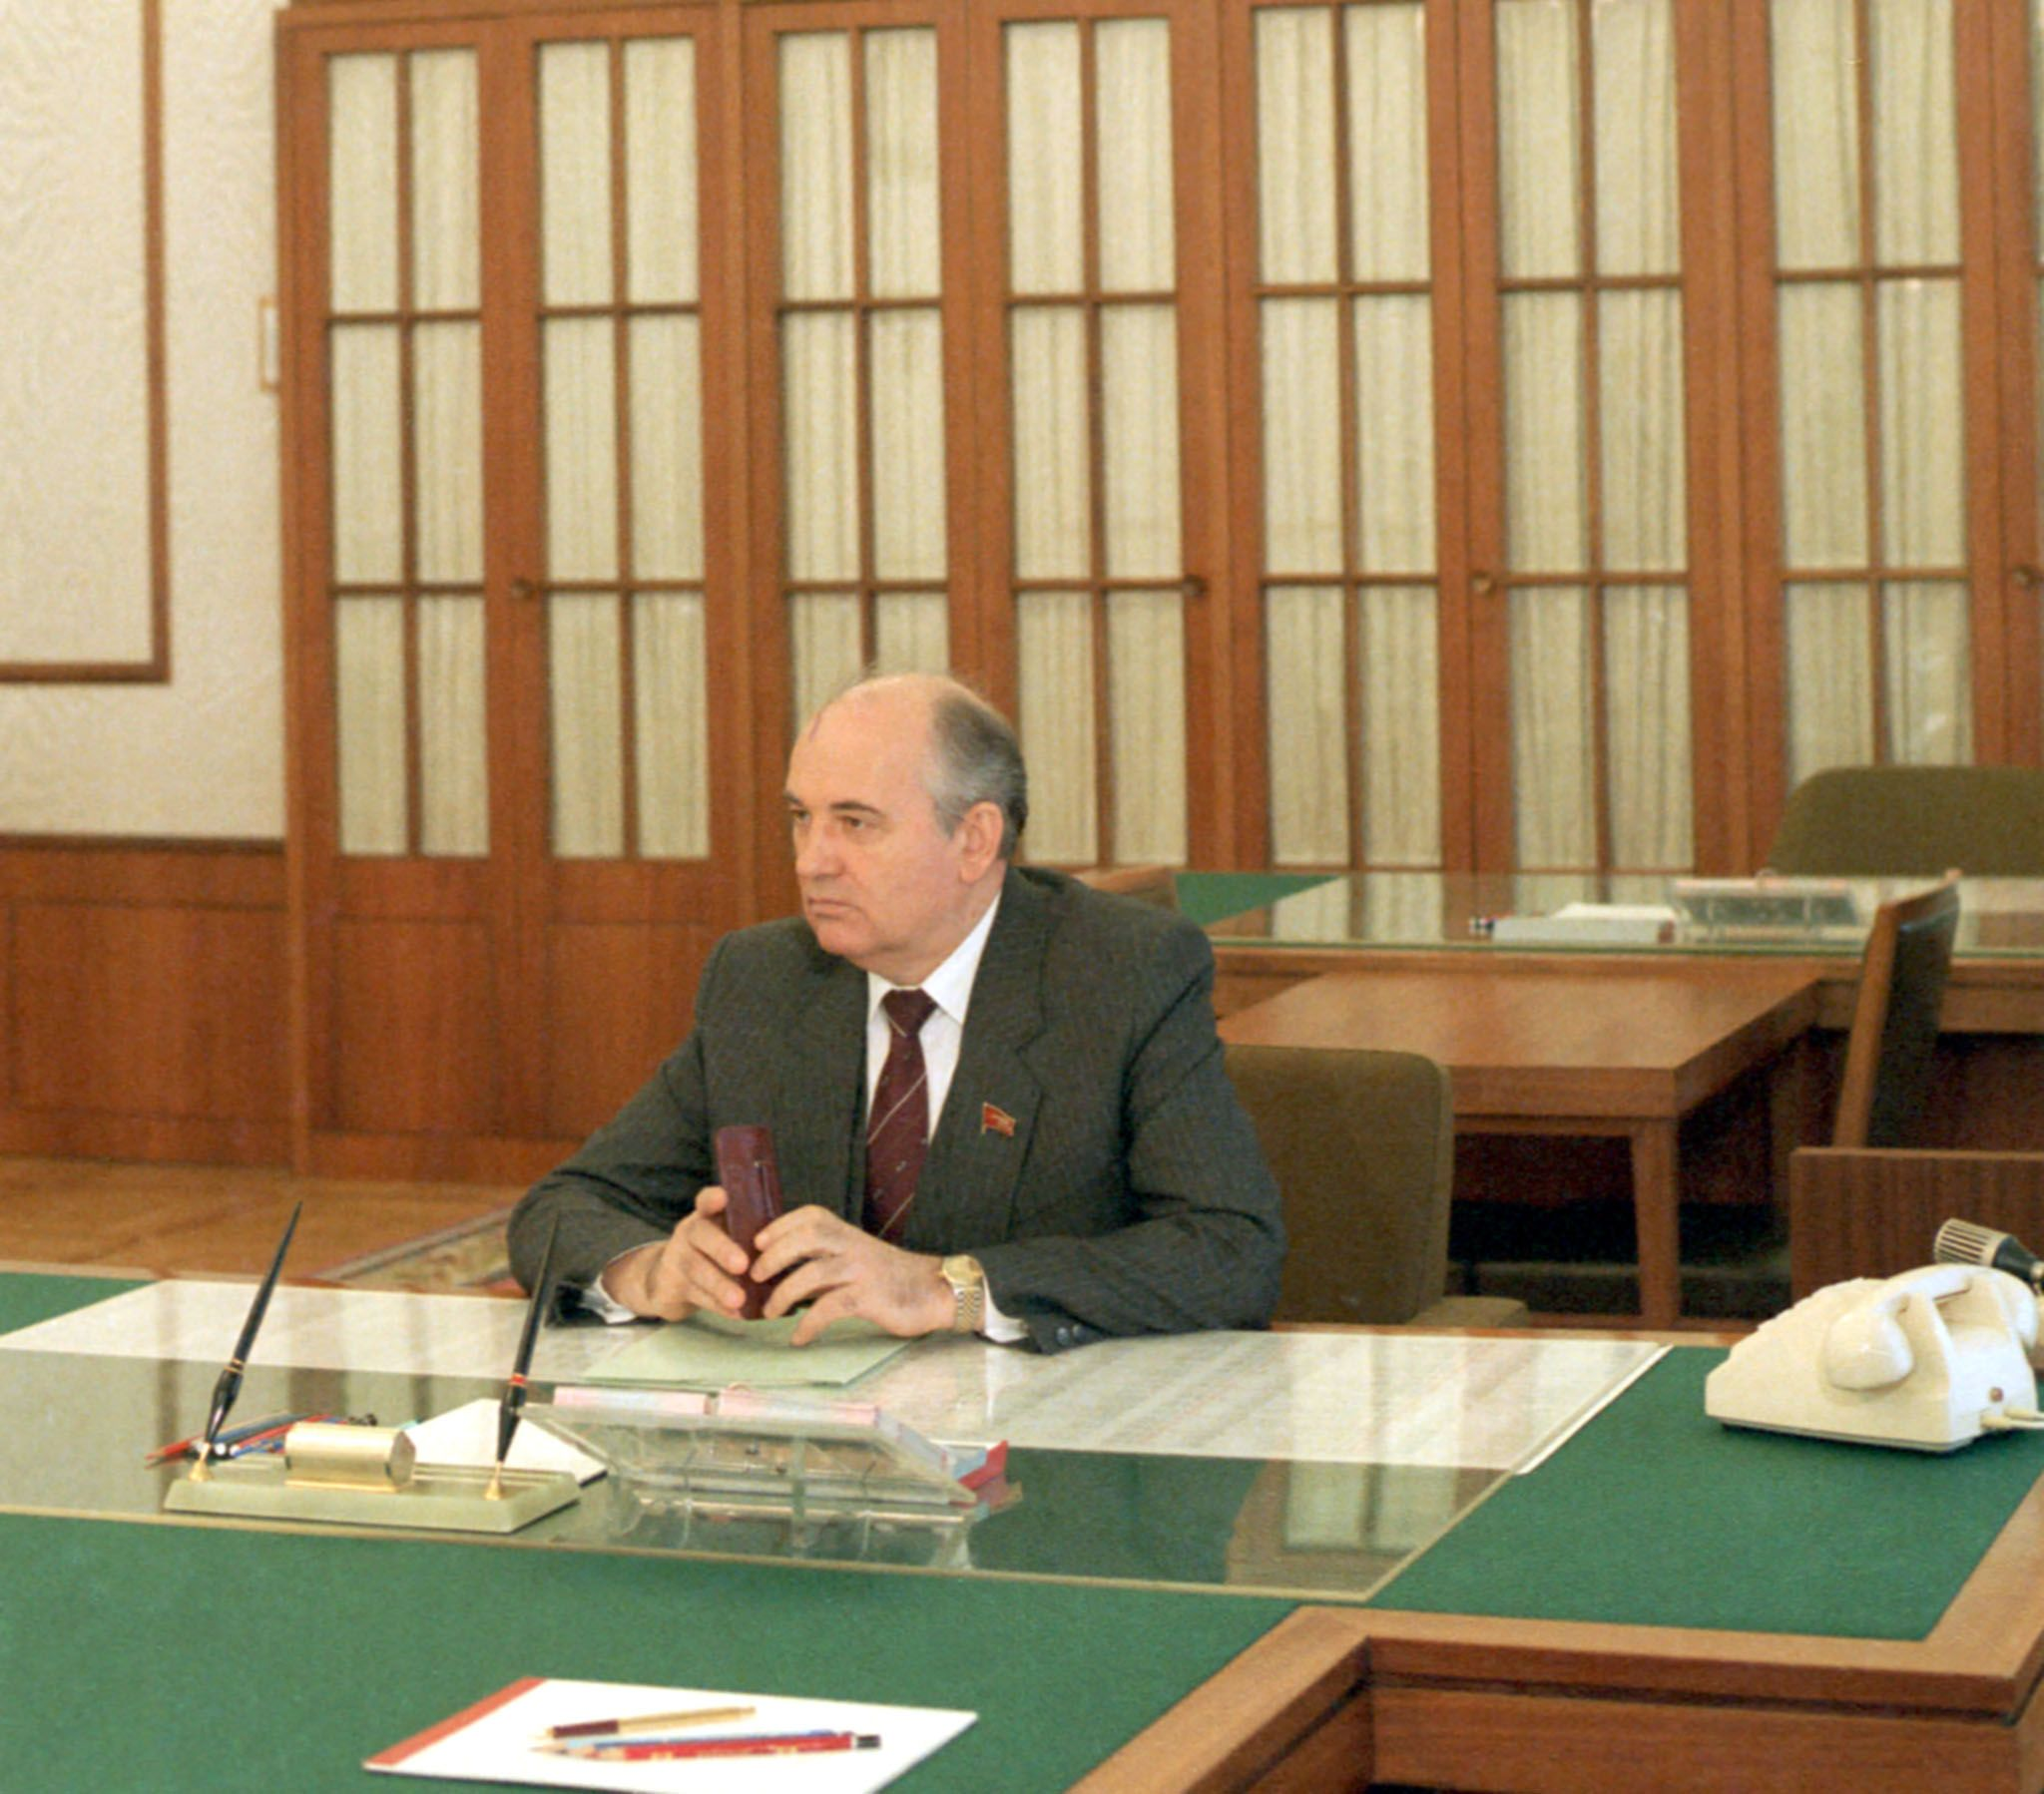 General Secretary of Central Committee of CPSU Mikhail Gorbachev, 1985